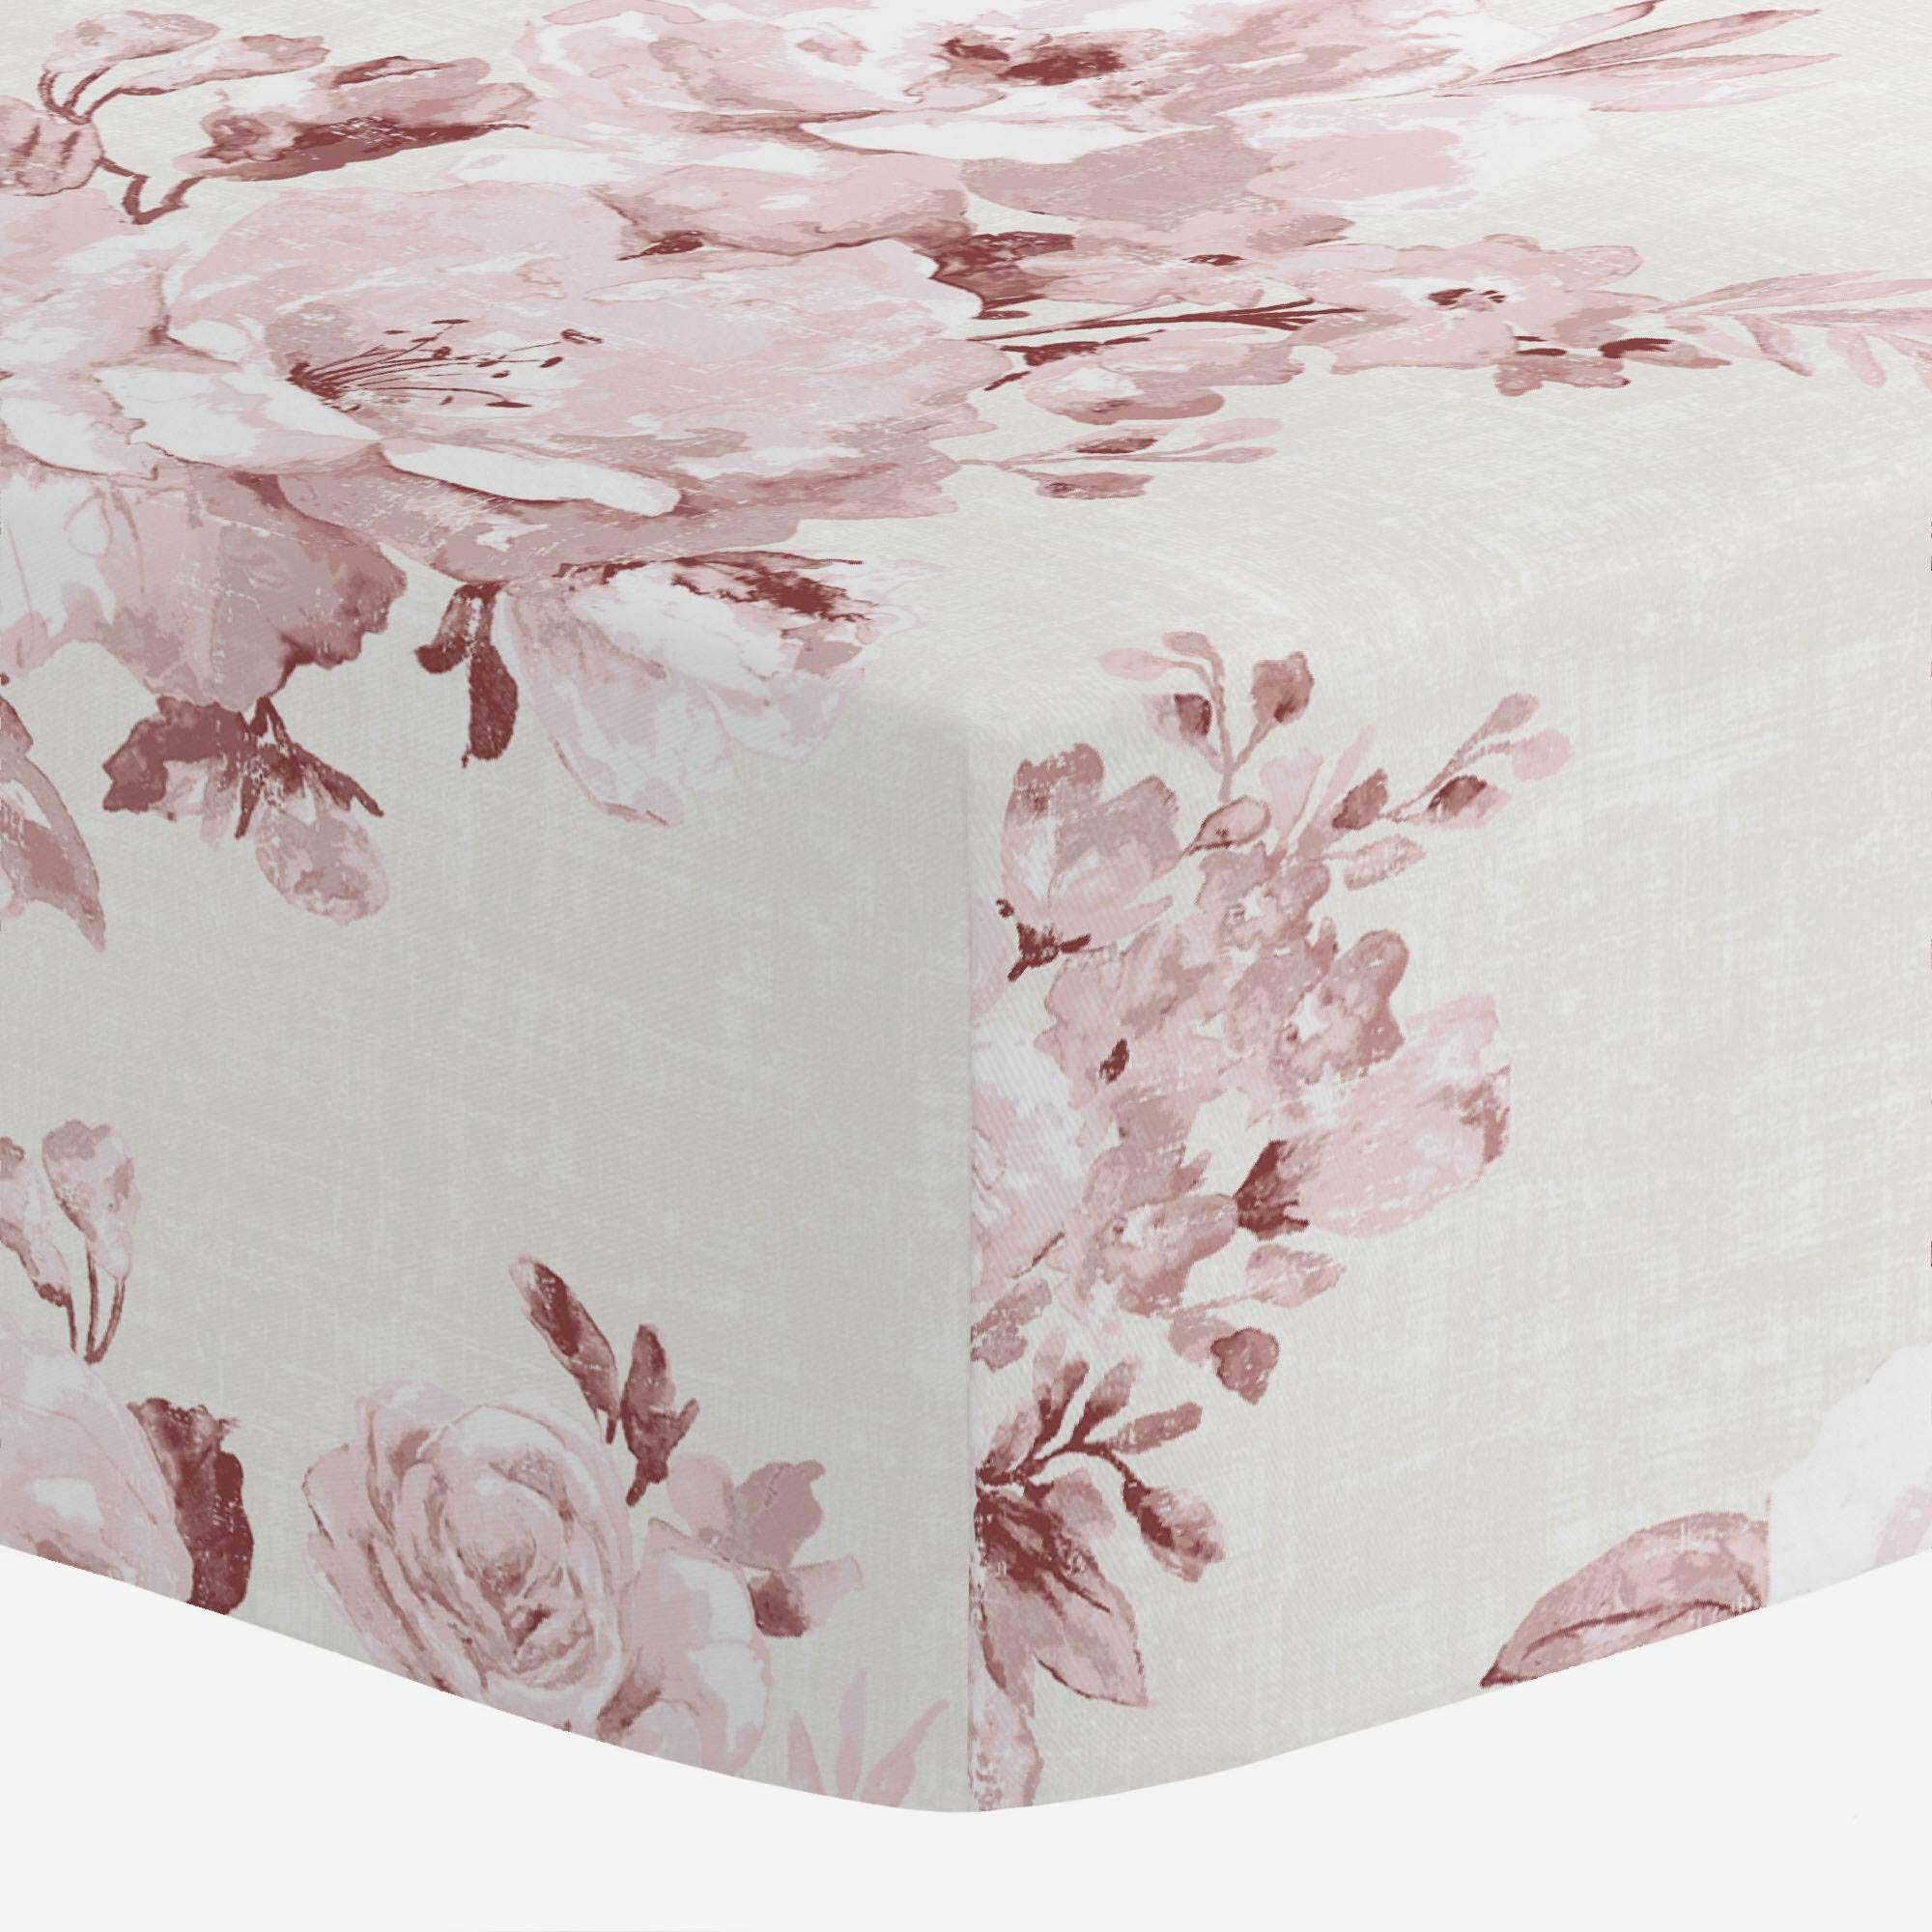 Carousel Designs Rose Farmhouse Floral Crib Sheet - Organic 100% Cotton Fitted Crib Sheet - Made in The USA by Carousel Designs